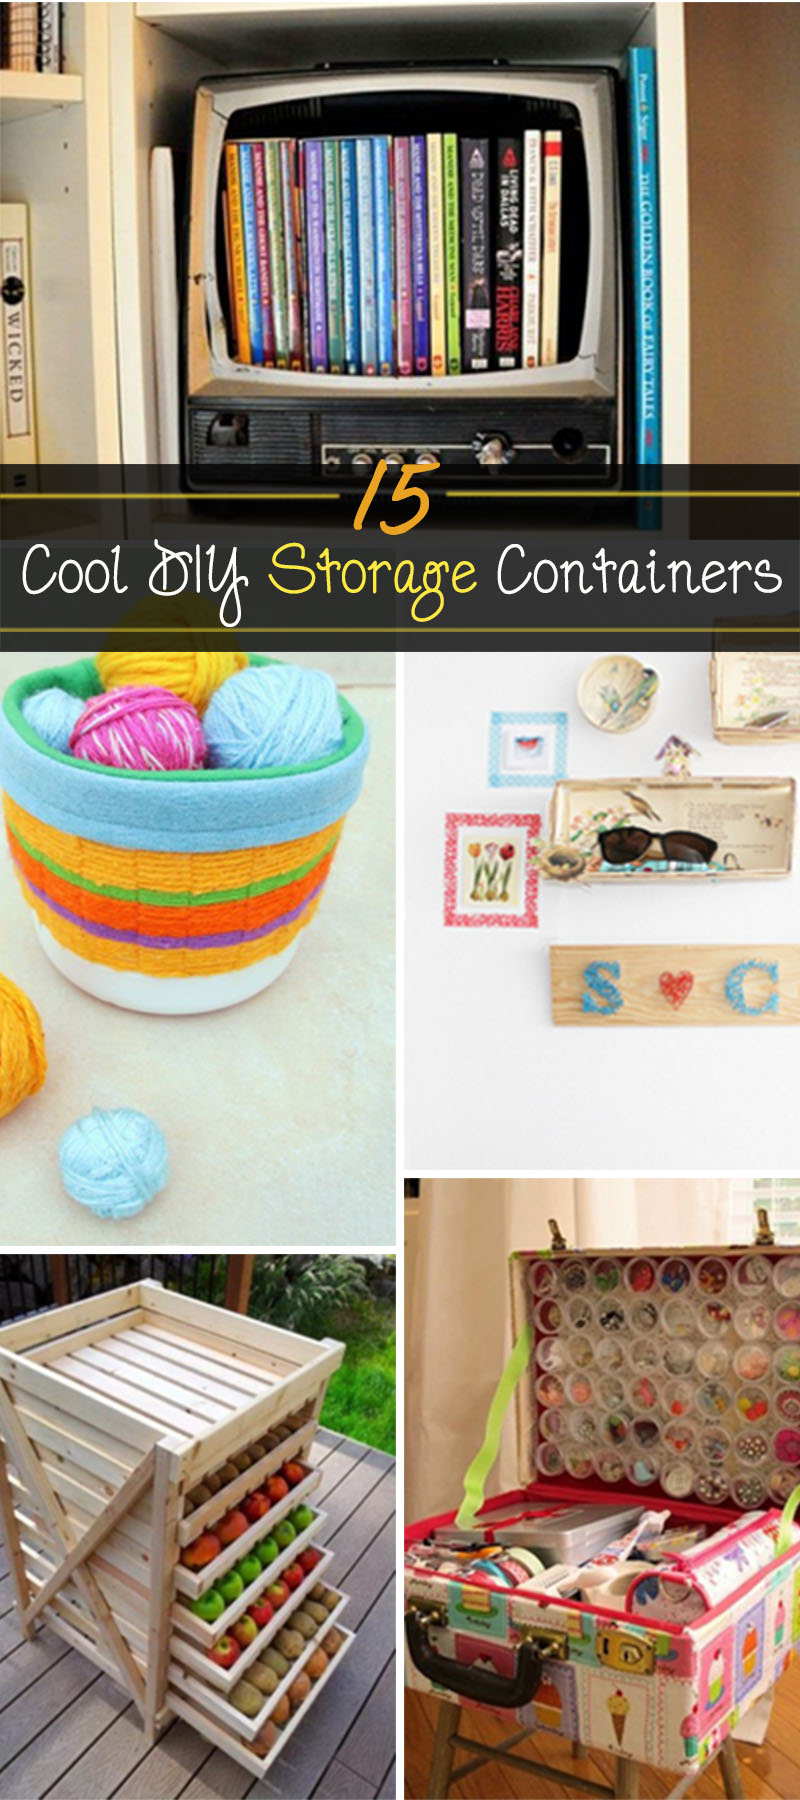 Bon Cool DIY Storage Containers!